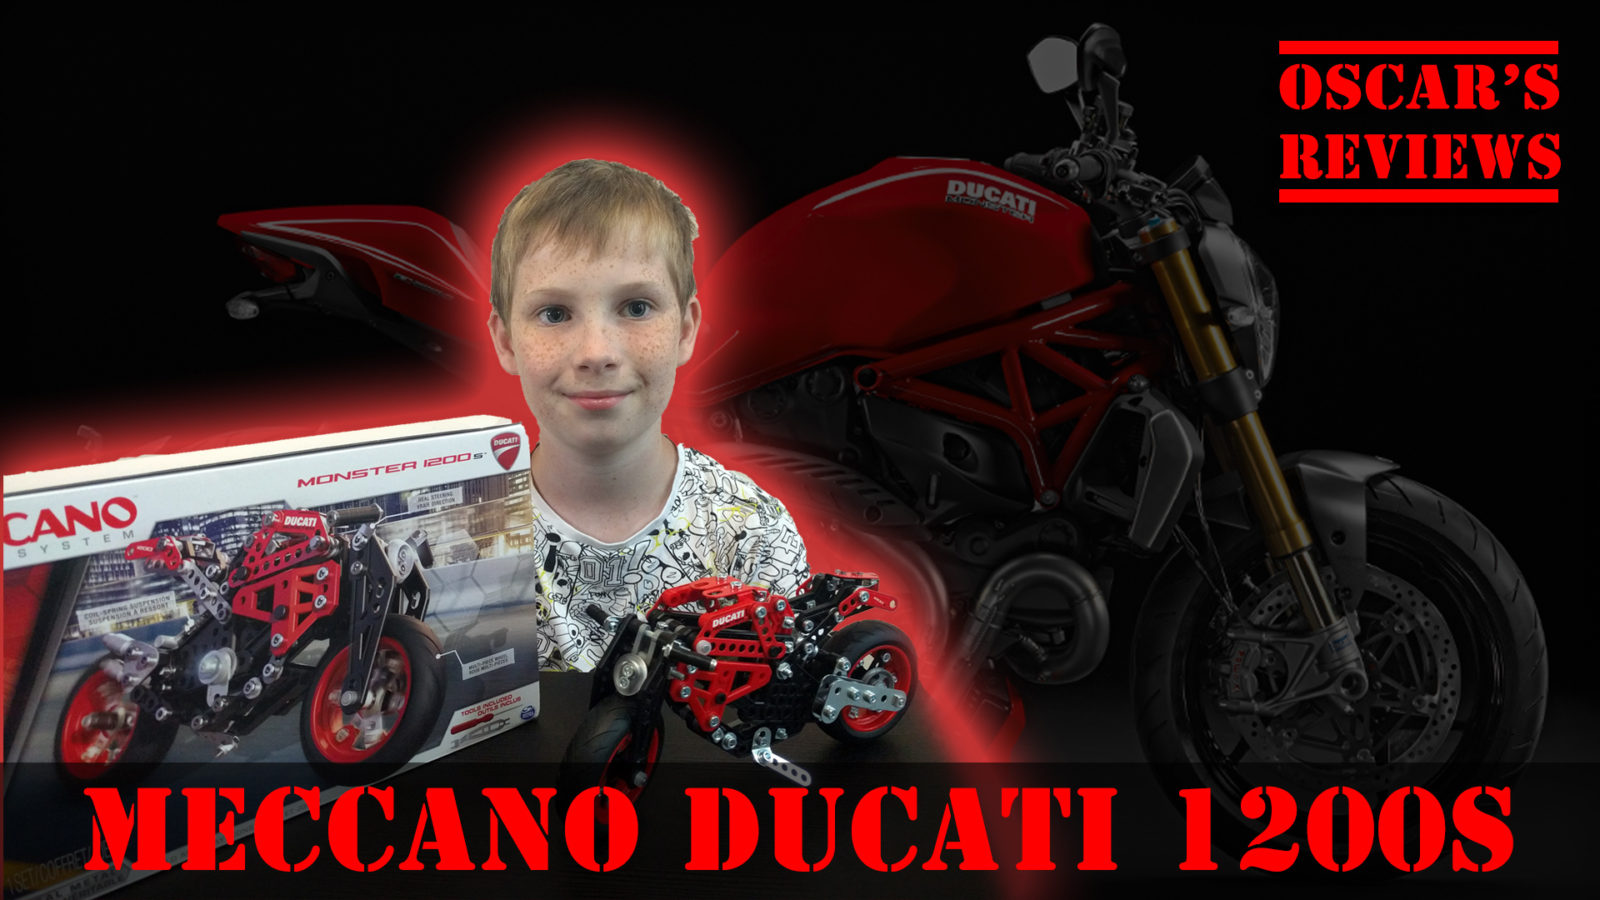 Meccano Ducati Monster 1200s – A Kid's Review